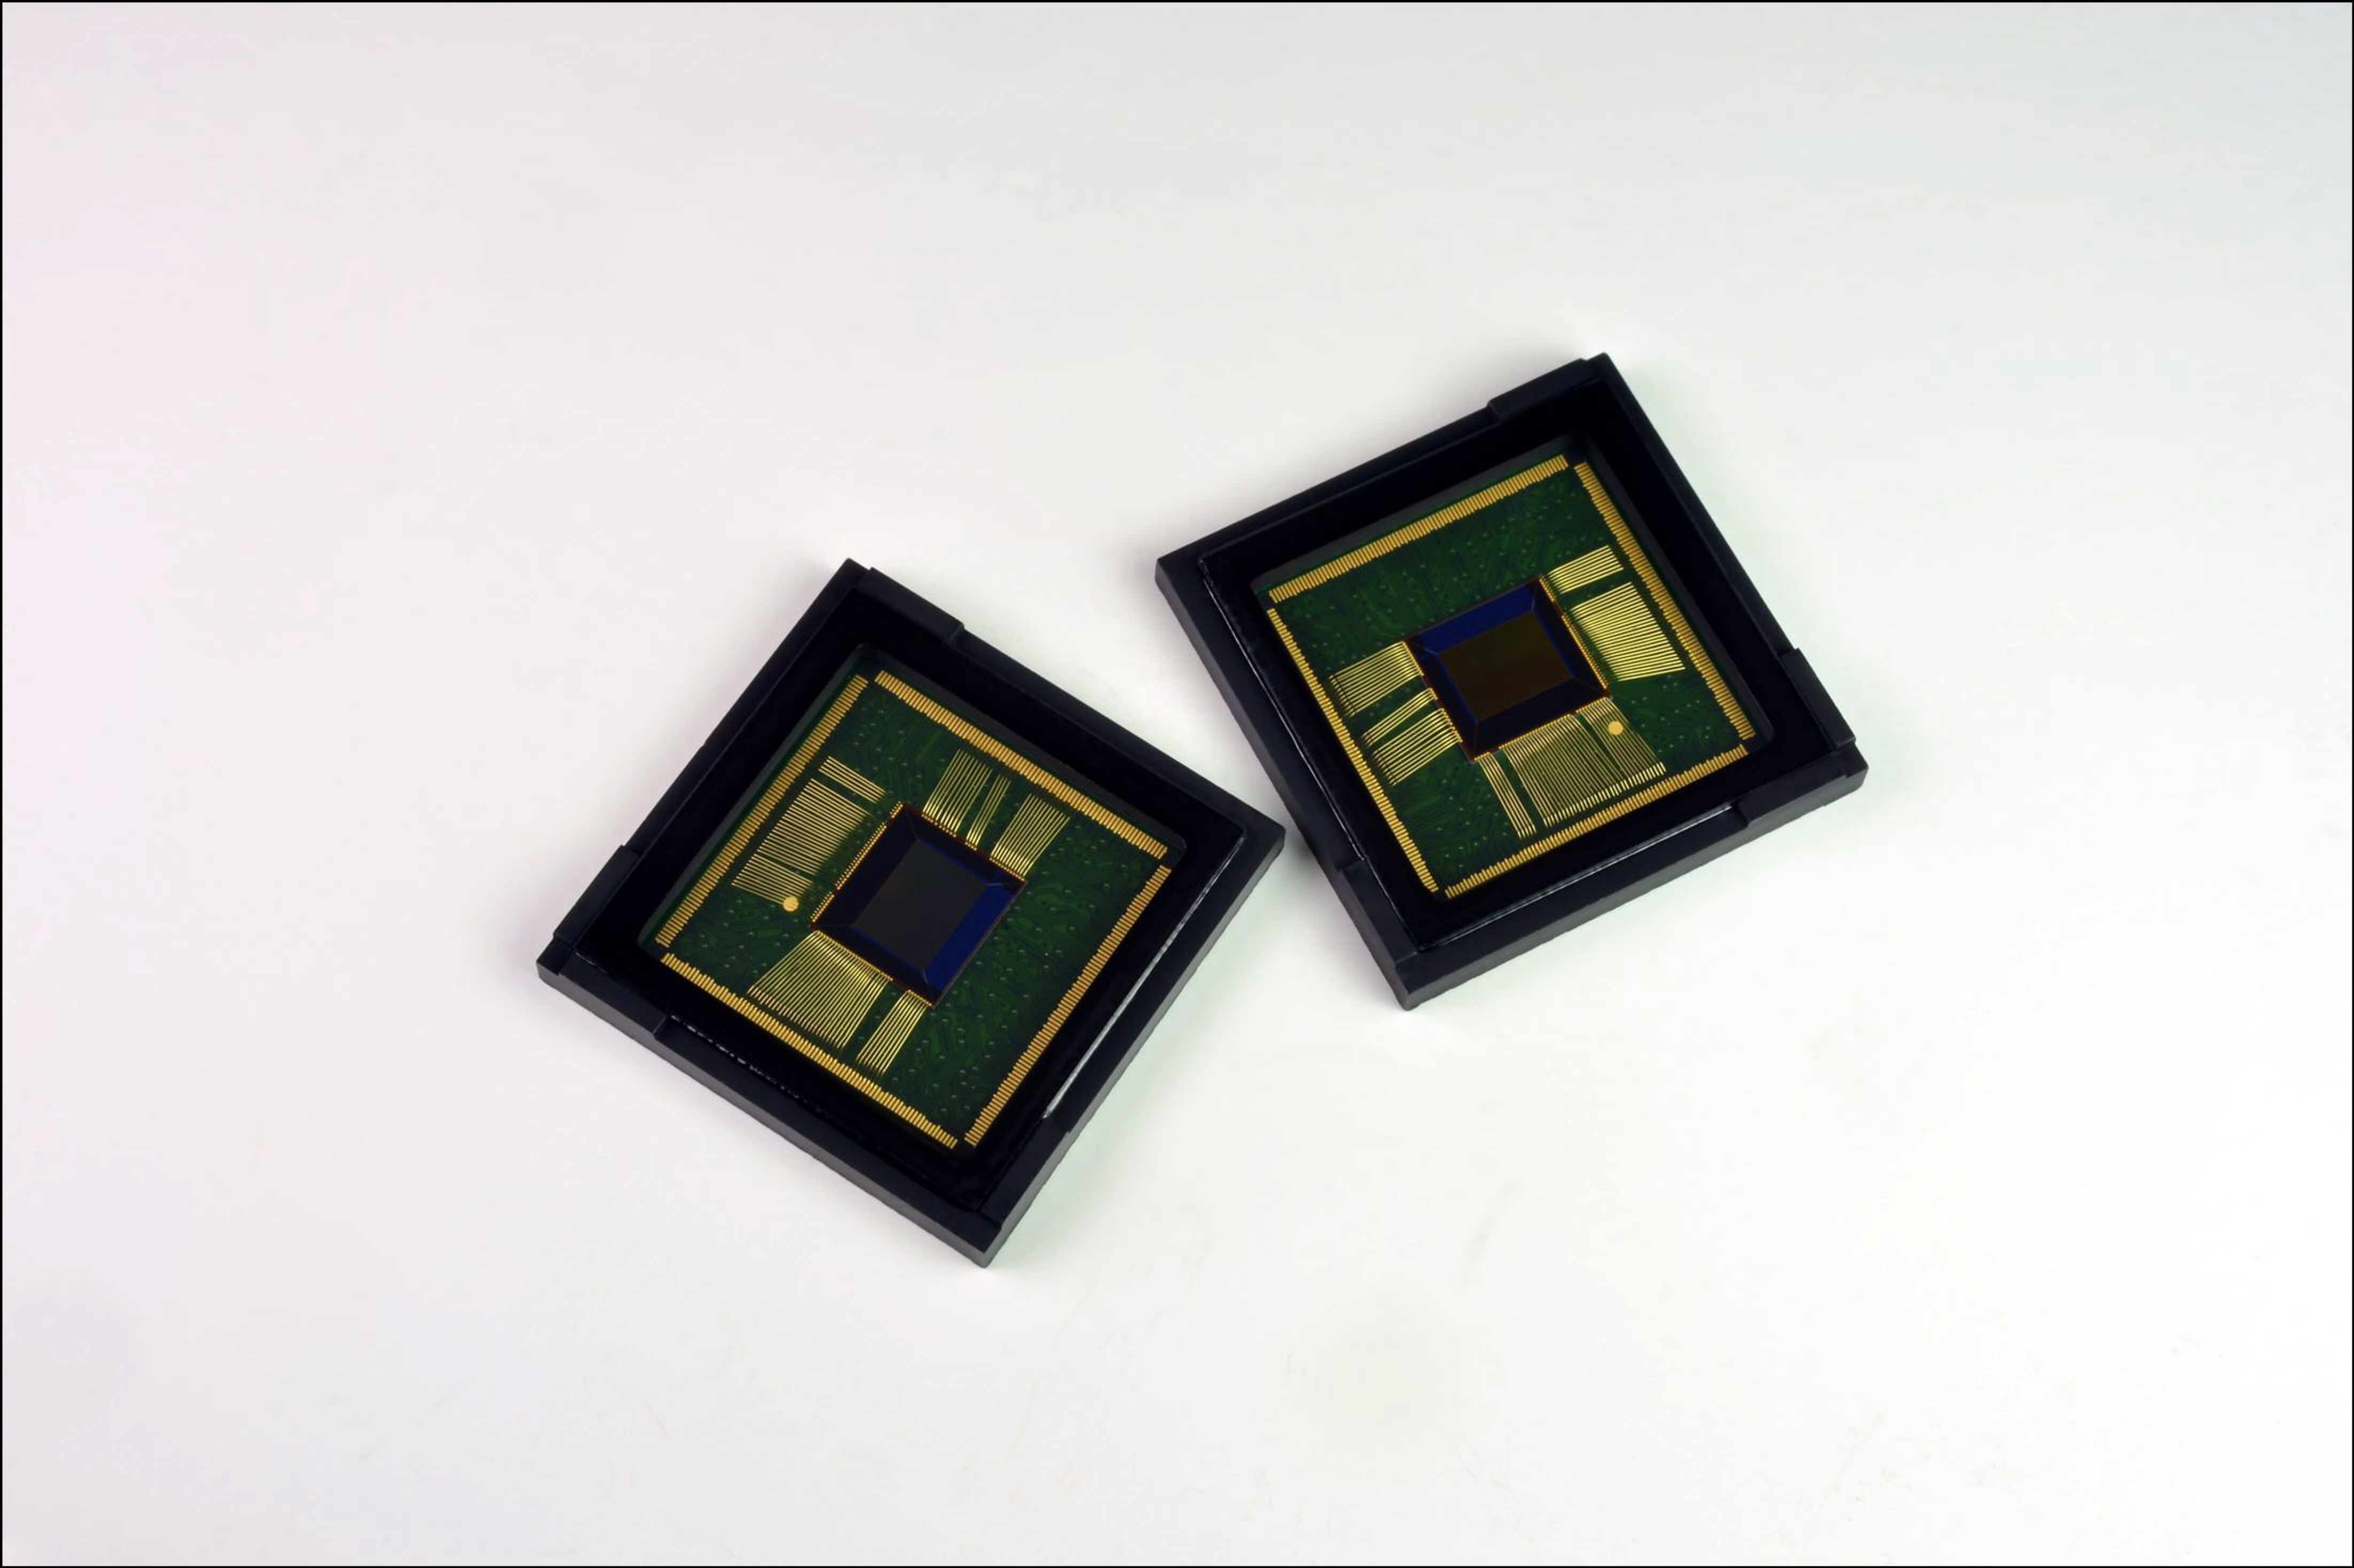 2. ISOCELL_CMOS-02